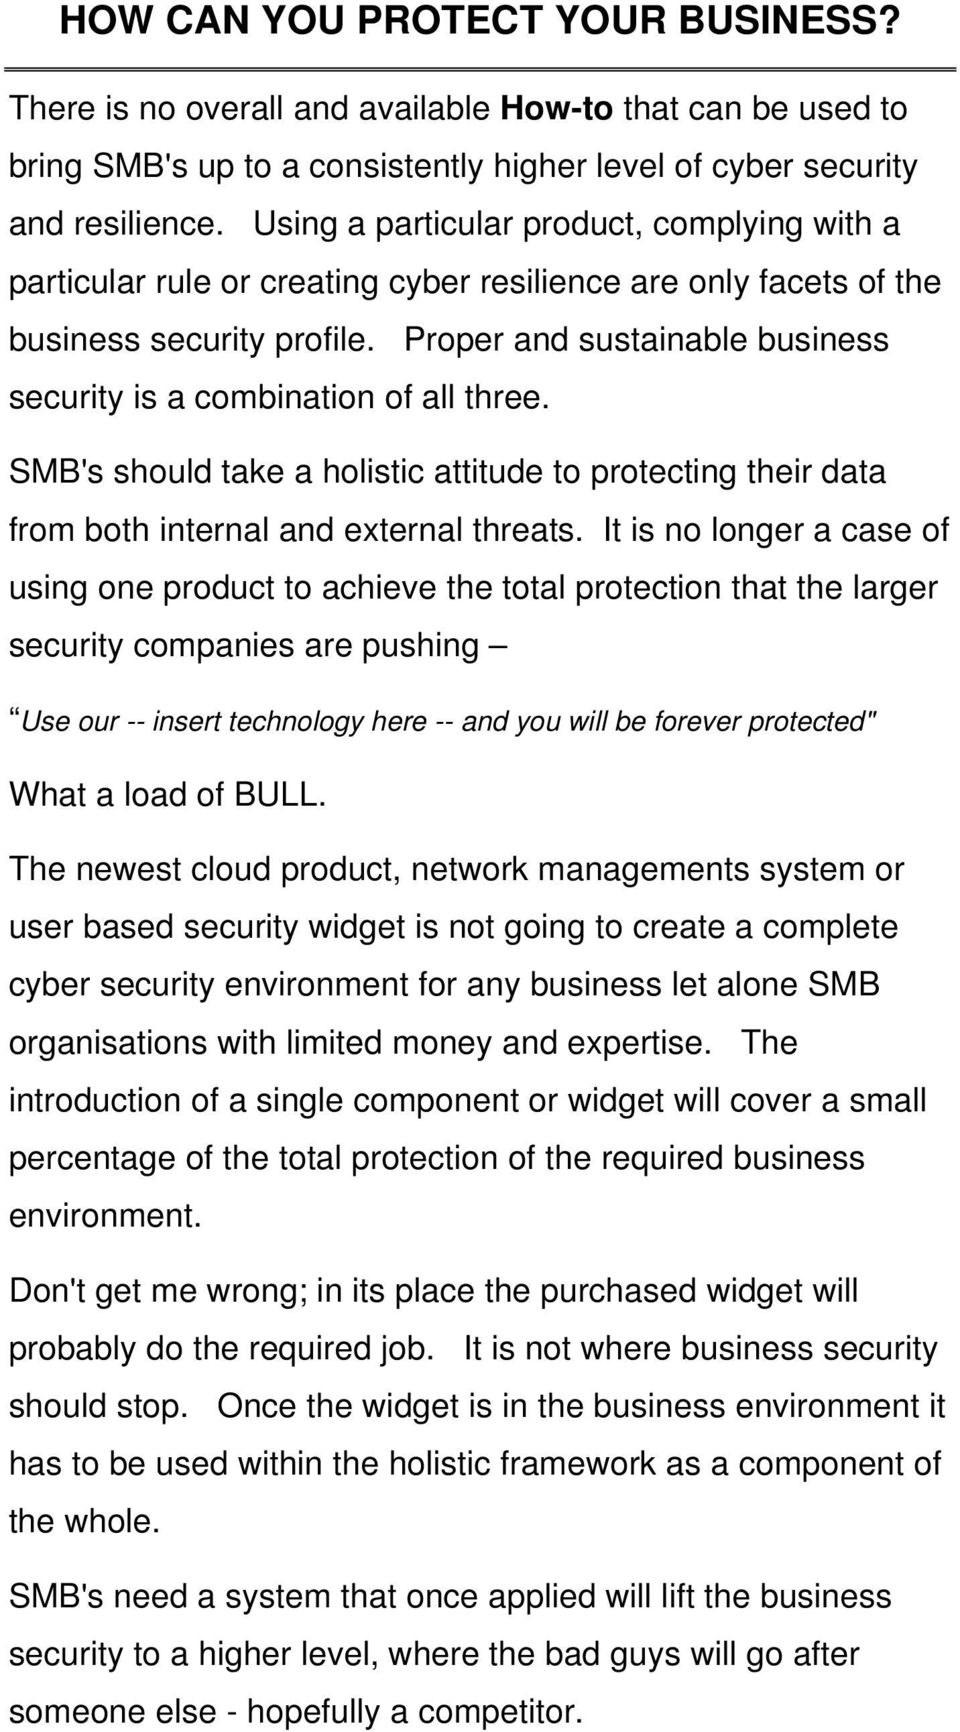 Proper and sustainable business security is a combination of all three. SMB's should take a holistic attitude to protecting their data from both internal and external threats.